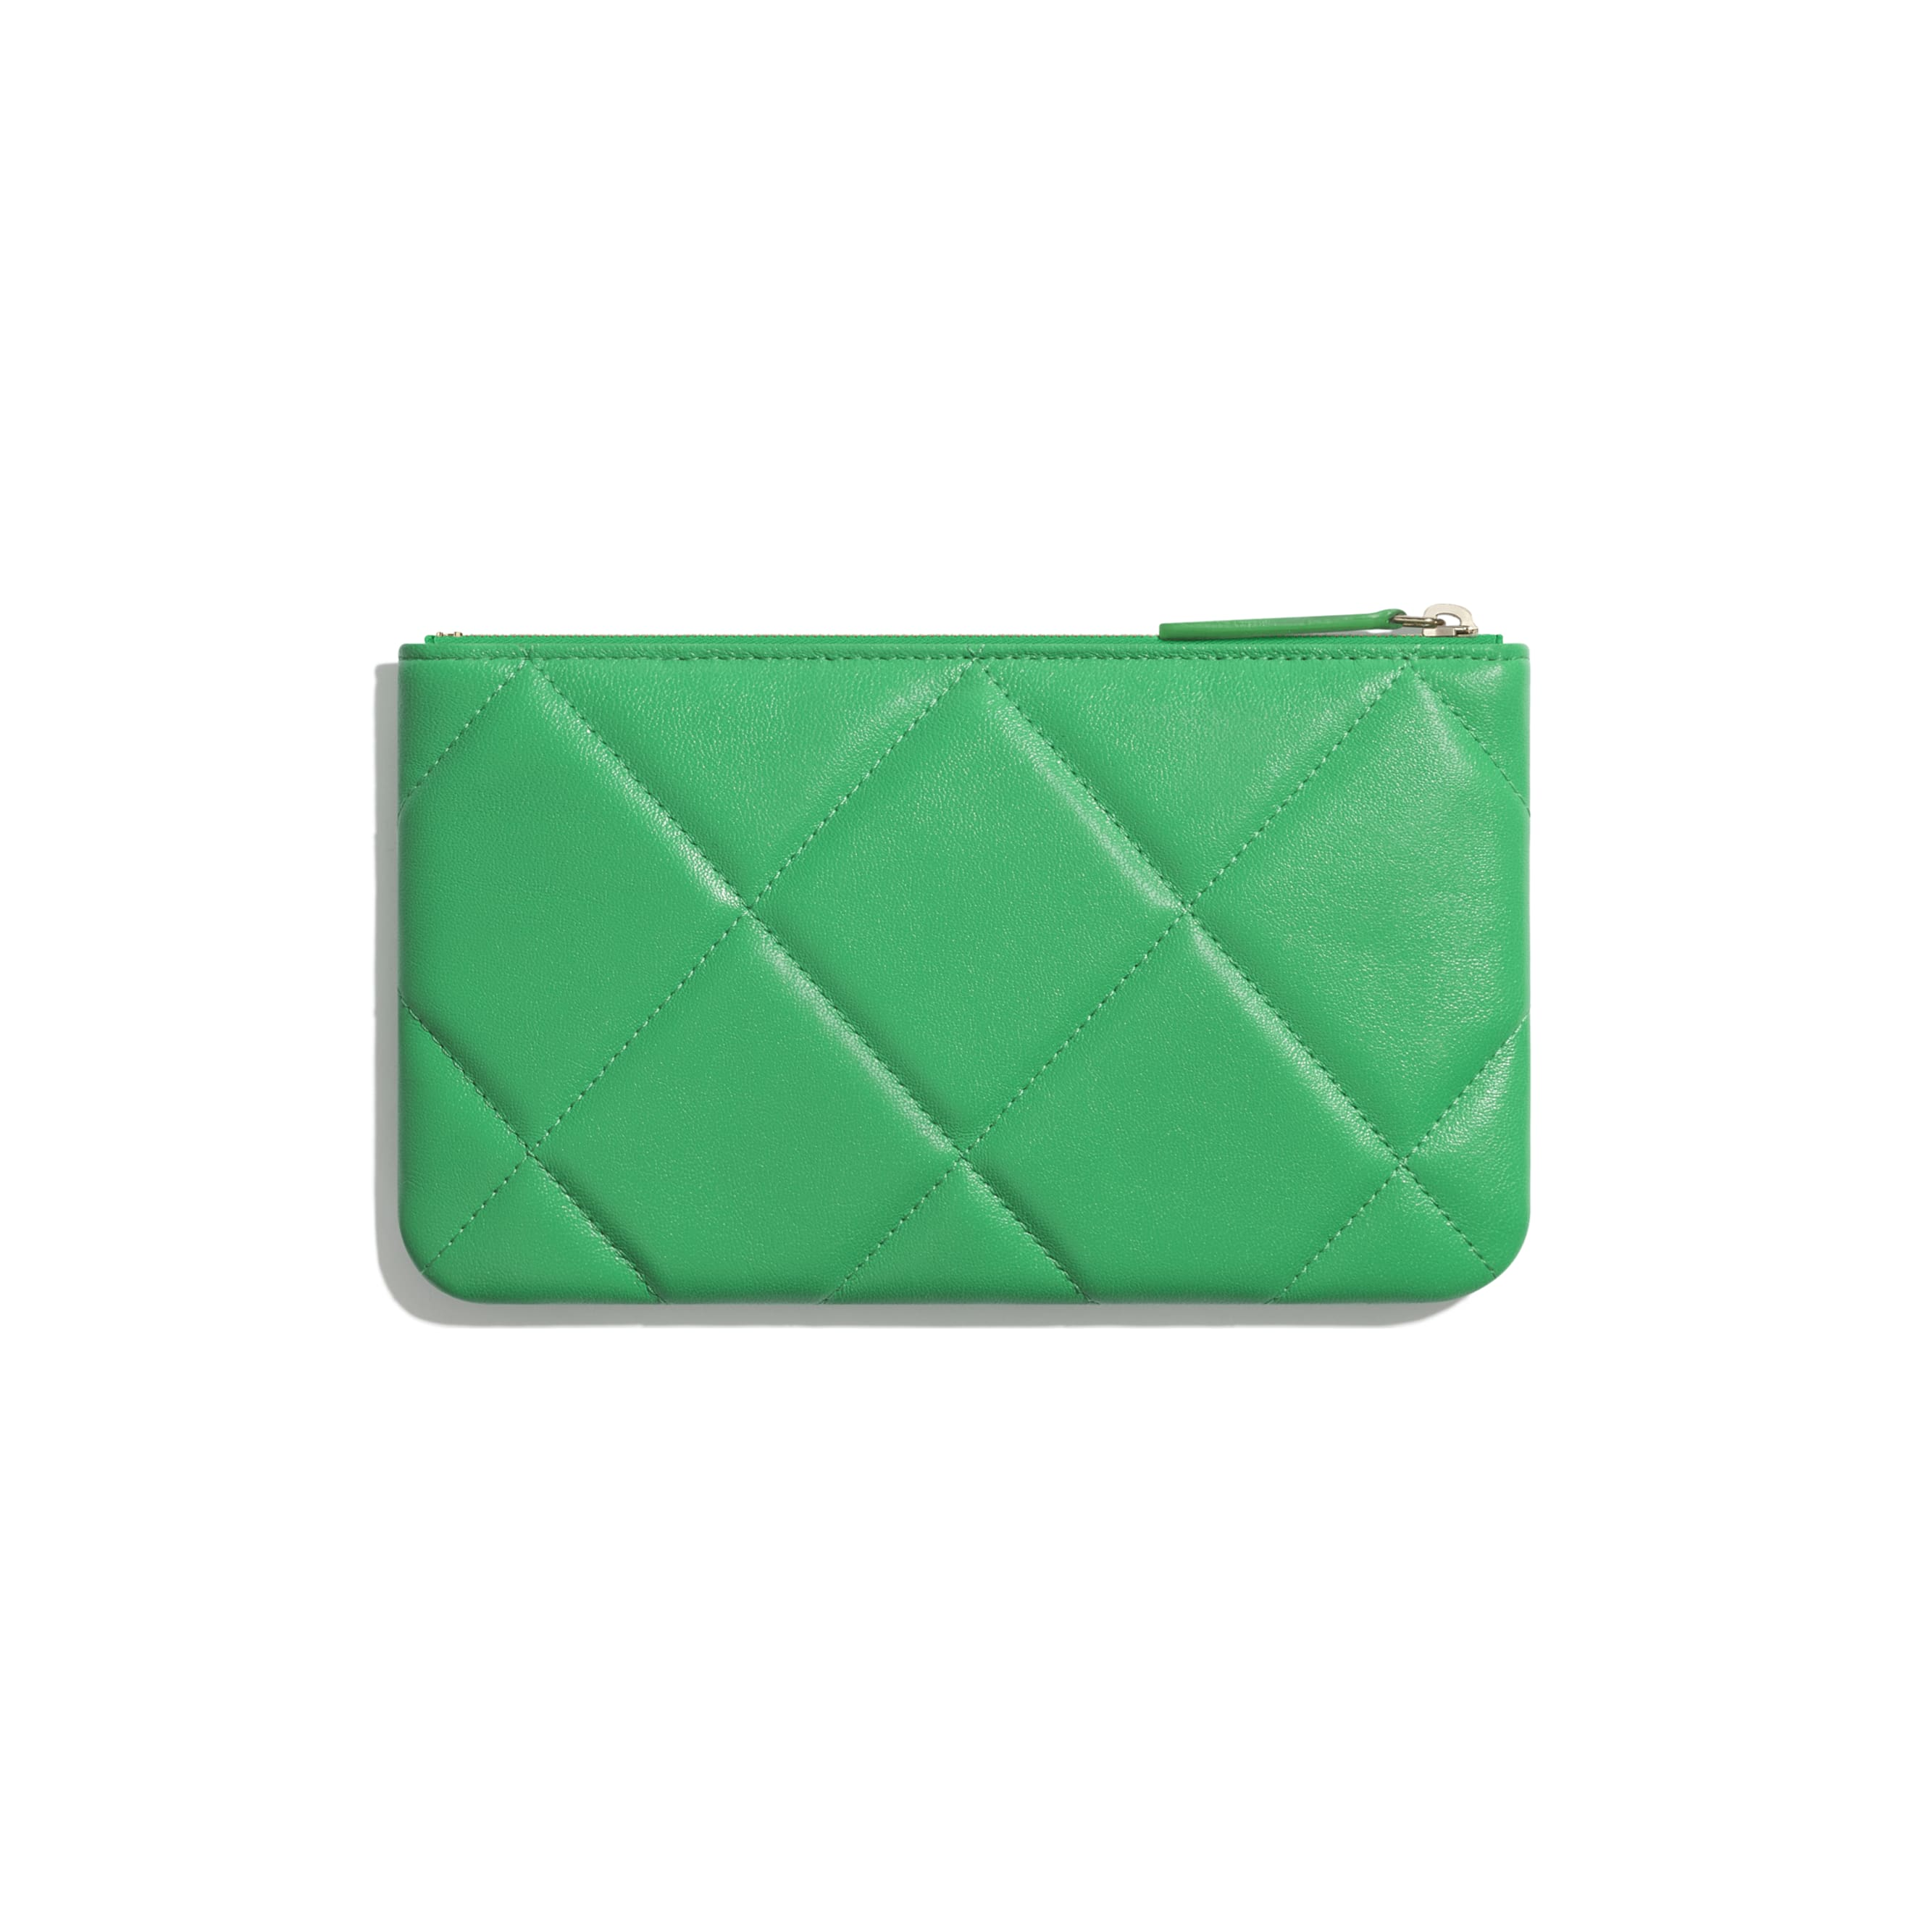 CHANEL 19 Small Pouch - Green - Lambskin, Gold-Tone, Silver-Tone & Ruthenium-Finish Metal - Alternative view - see standard sized version